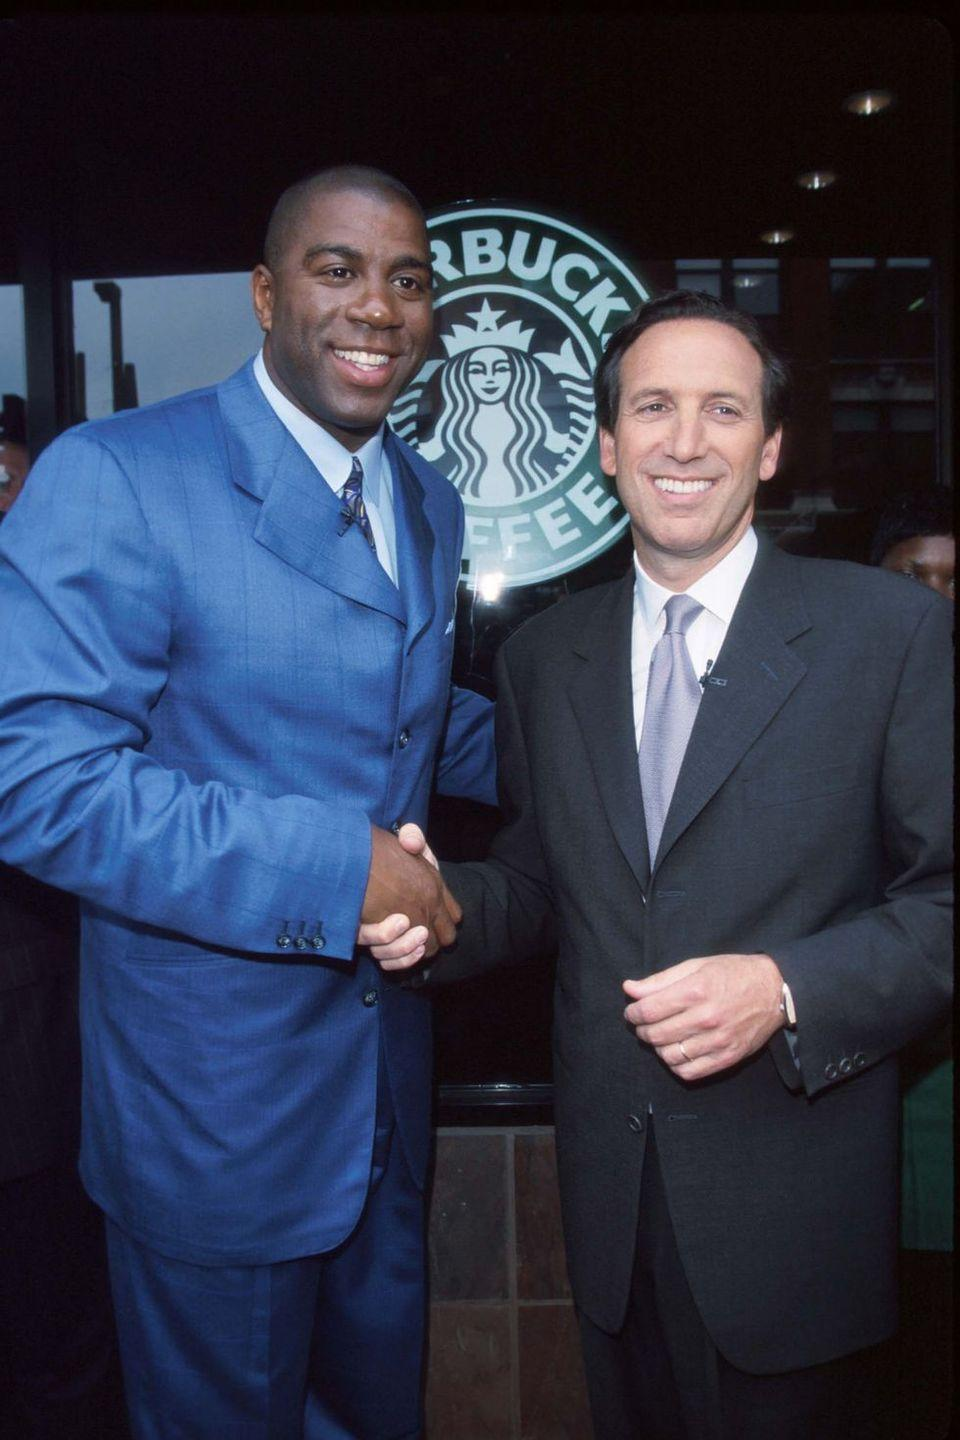 <p>Magic Johnson teamed up with the company to help with its social impact projects. He visited several locations in underserved neighborhoods across the country. </p>